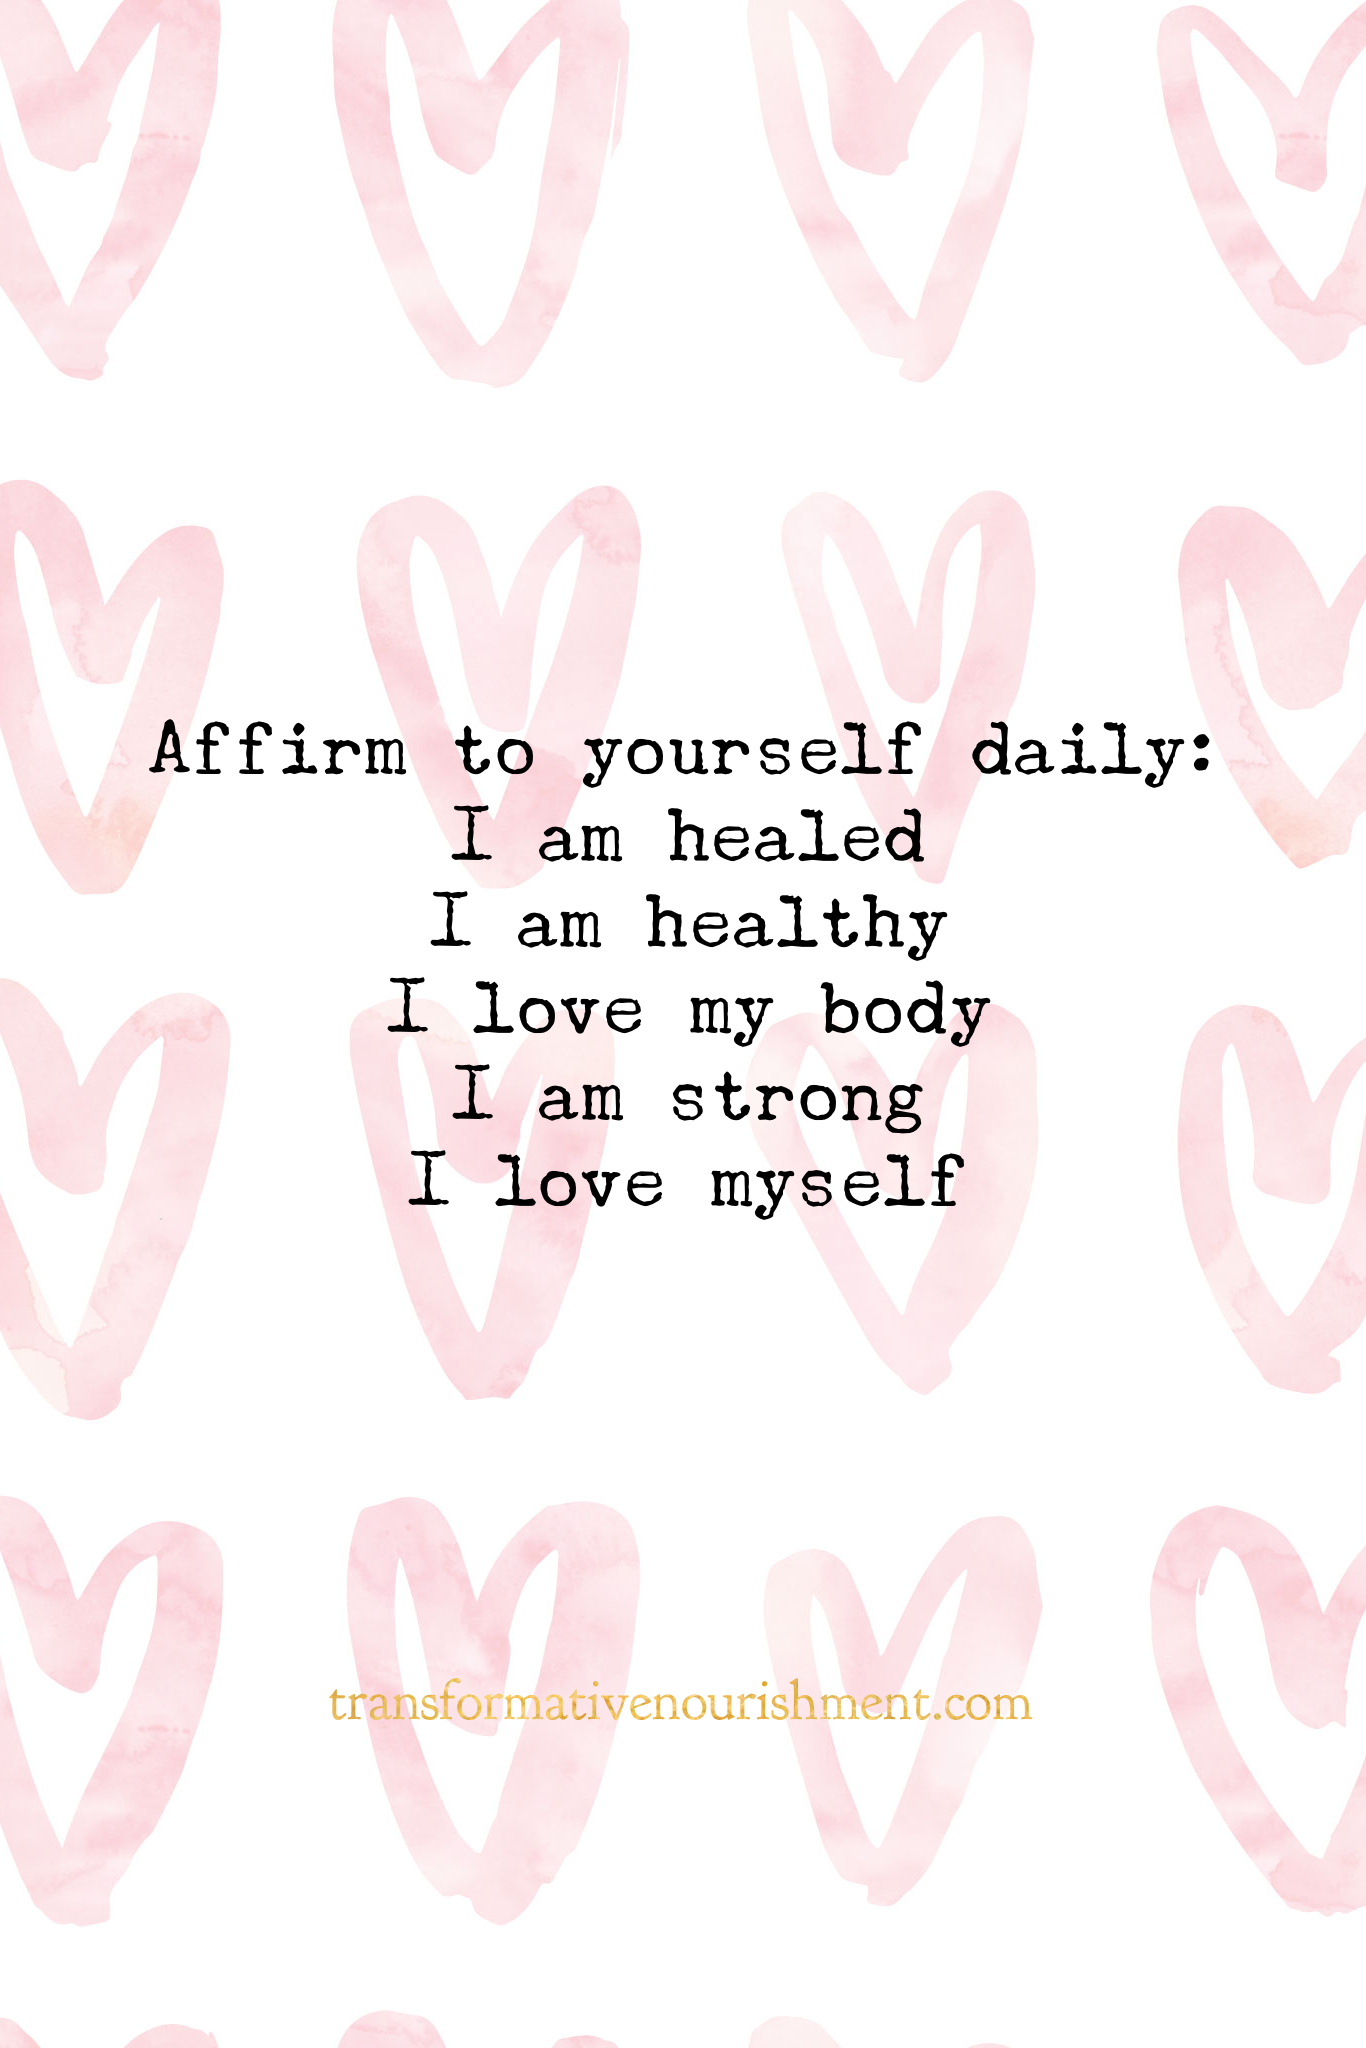 5 positive daily affirmations to repeat What does your self talk look like Health wellness self talk affirmations mantra emotional well being mental health nutrition self...